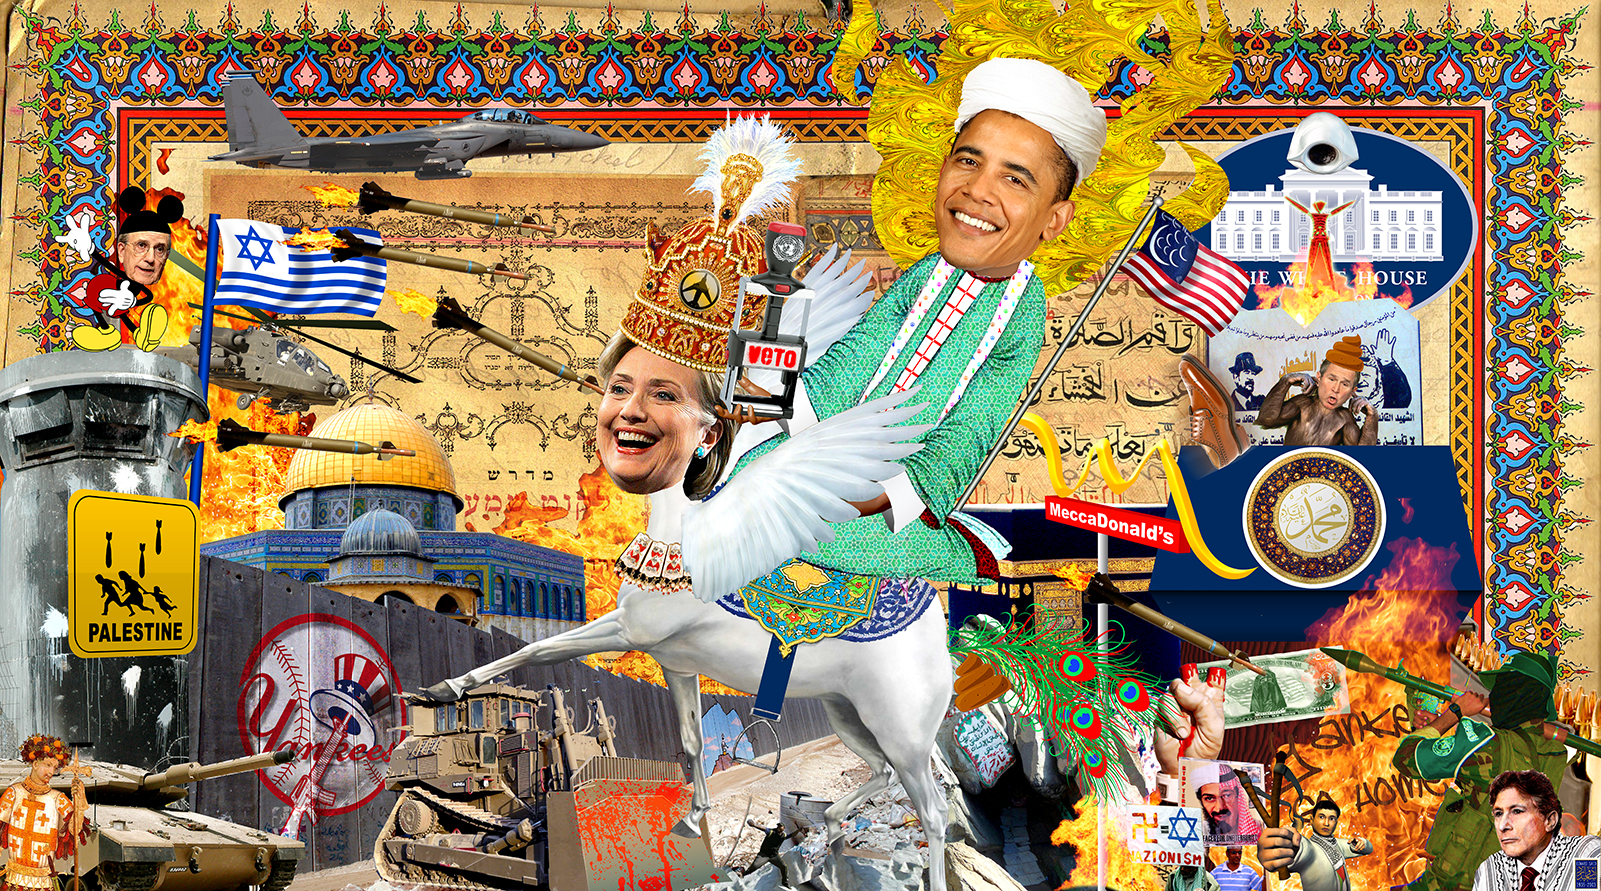 A political collage of Barak Obama as Mohammad riding a pegasus with the head of Hilary Clinton.